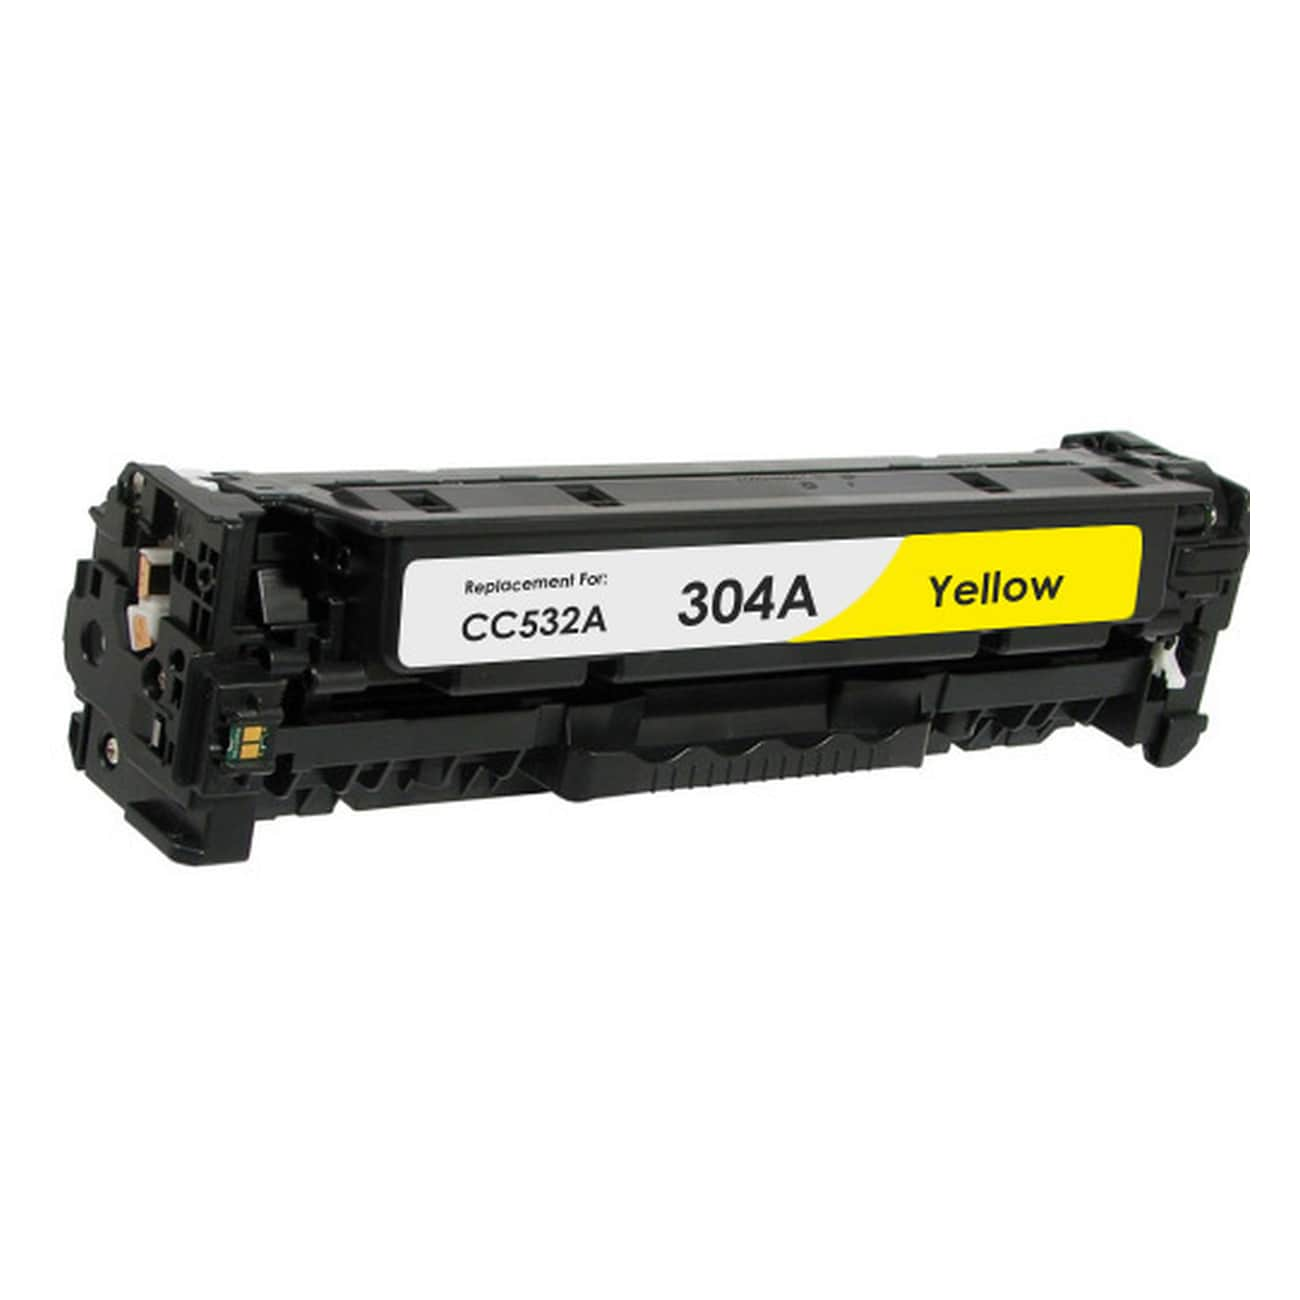 CC532A Toner Cartridge - HP Remanufactured (Yellow)